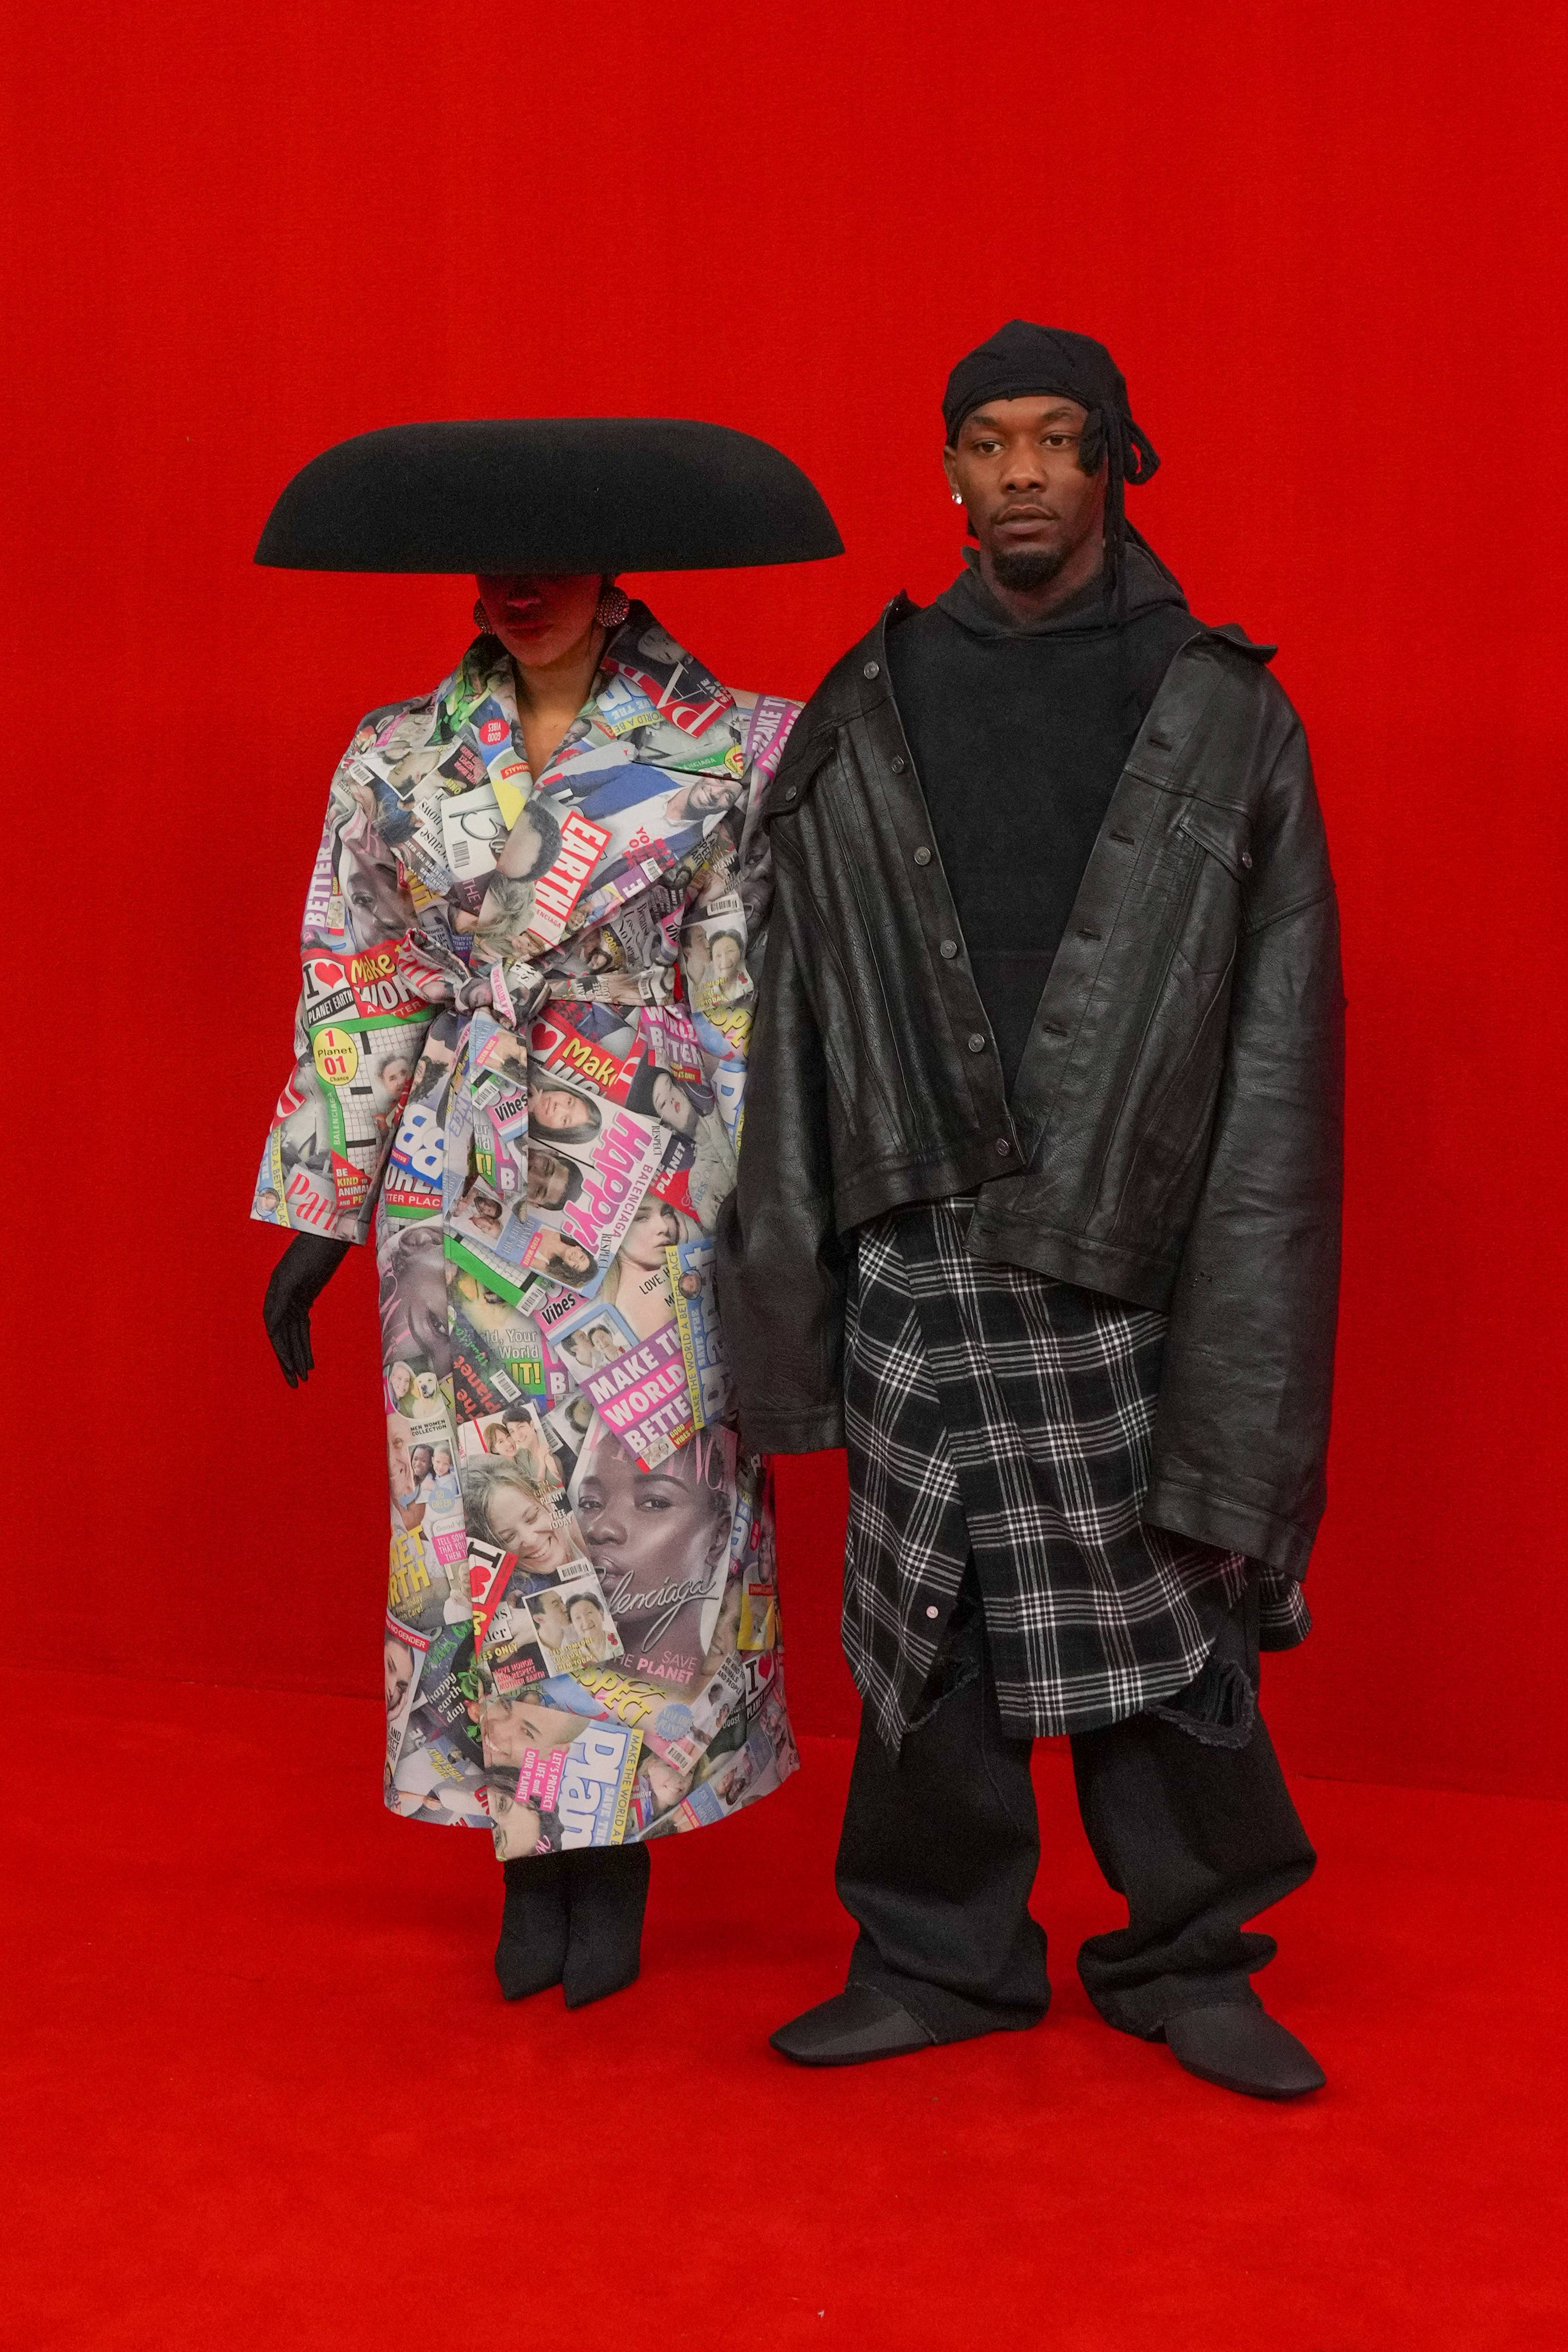 """Paris Fashion Week-Balenciaga Runway - During Paris Fashion Week,Cardi BandOffsetwere an entire mood when they showed up to the Balenciaga show wearing fashions from the luxury brand. Showcasing new looks from the Spring/Summer 2022, Offset took the runway as his proud wife cheered him.""""Popped out to s/s 22 @balenciaga show! So proud of my husband @offsetrn who walked the show,"""" Cardi captioned photos on Instagram.We love the support! (Photo by Peter White/Getty Images)"""